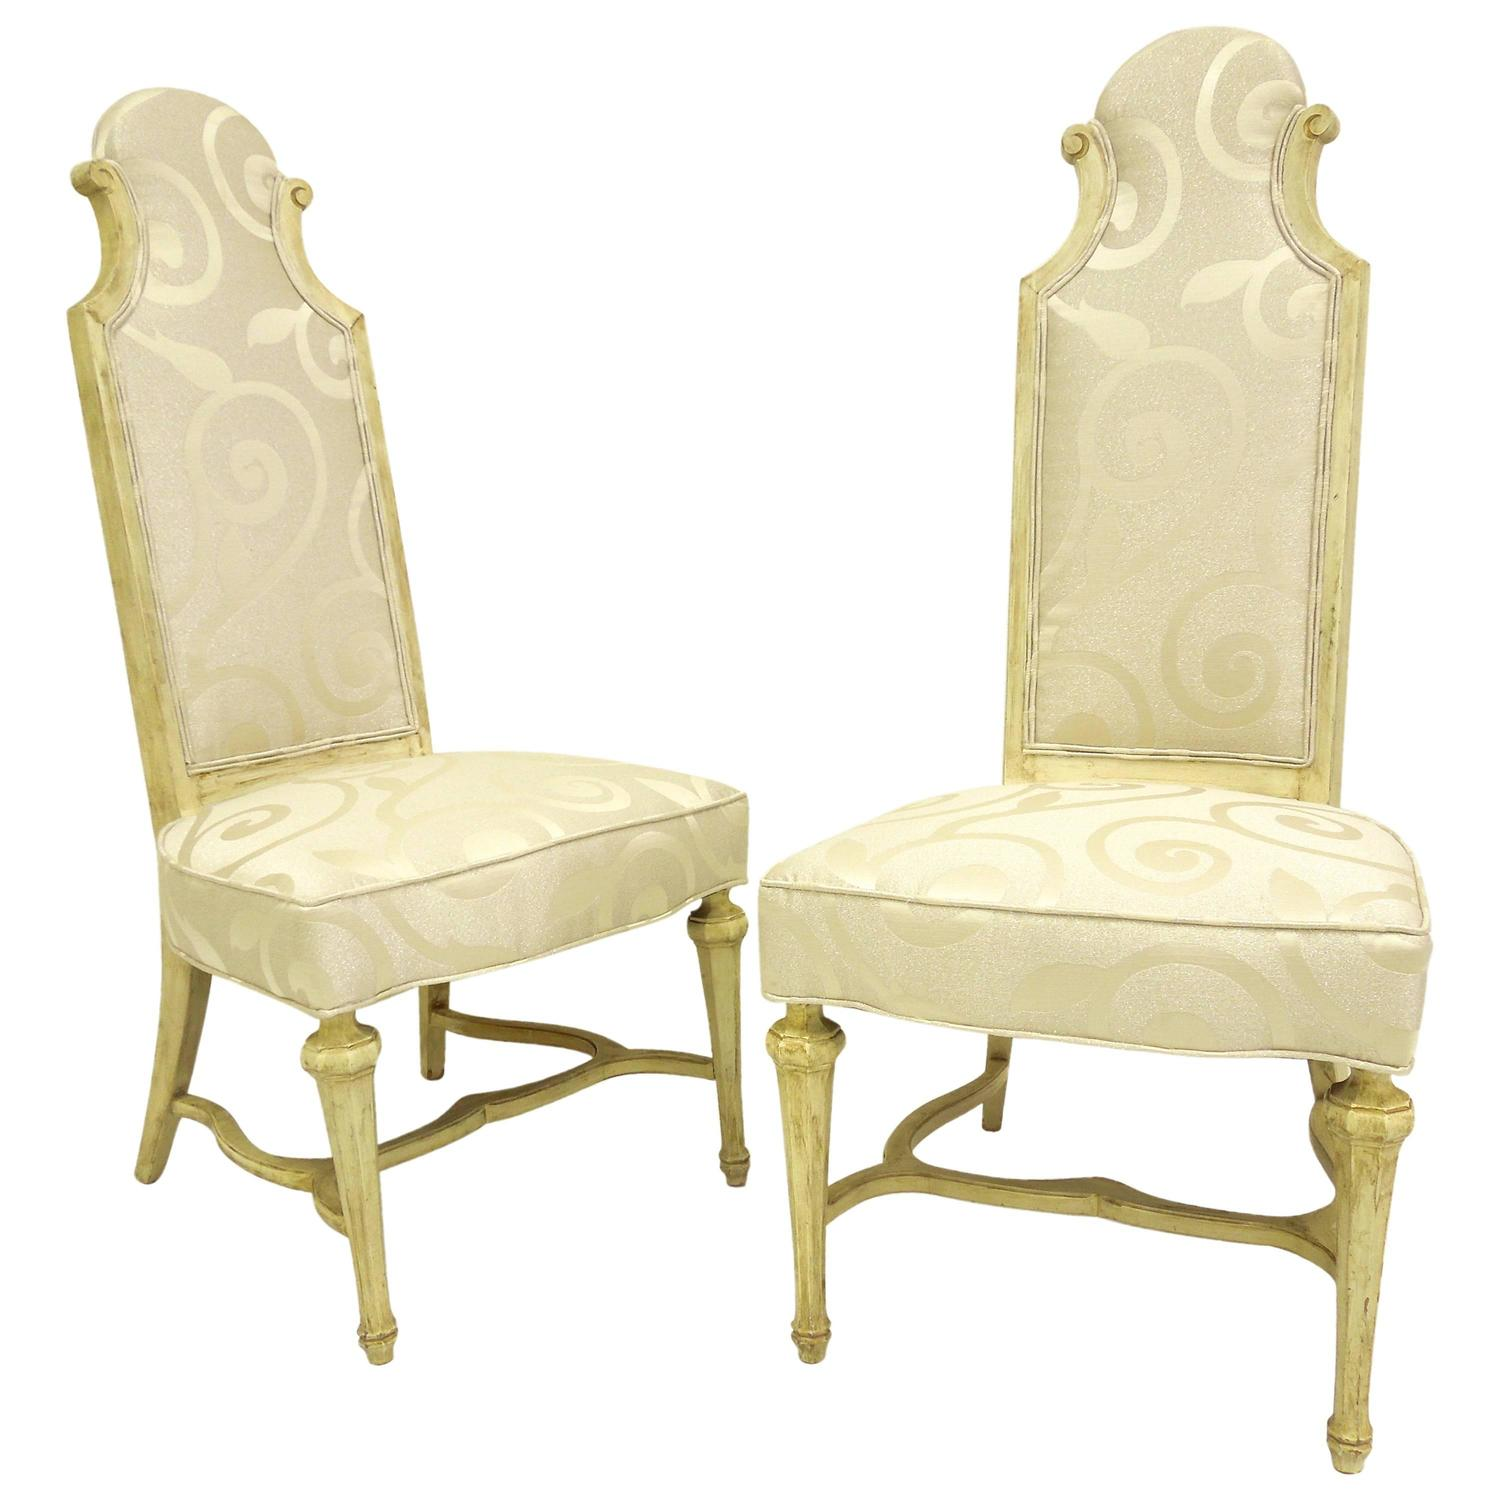 Pair of 1950s Hollywood Regency High Back Chairs For Sale at 1stdibs